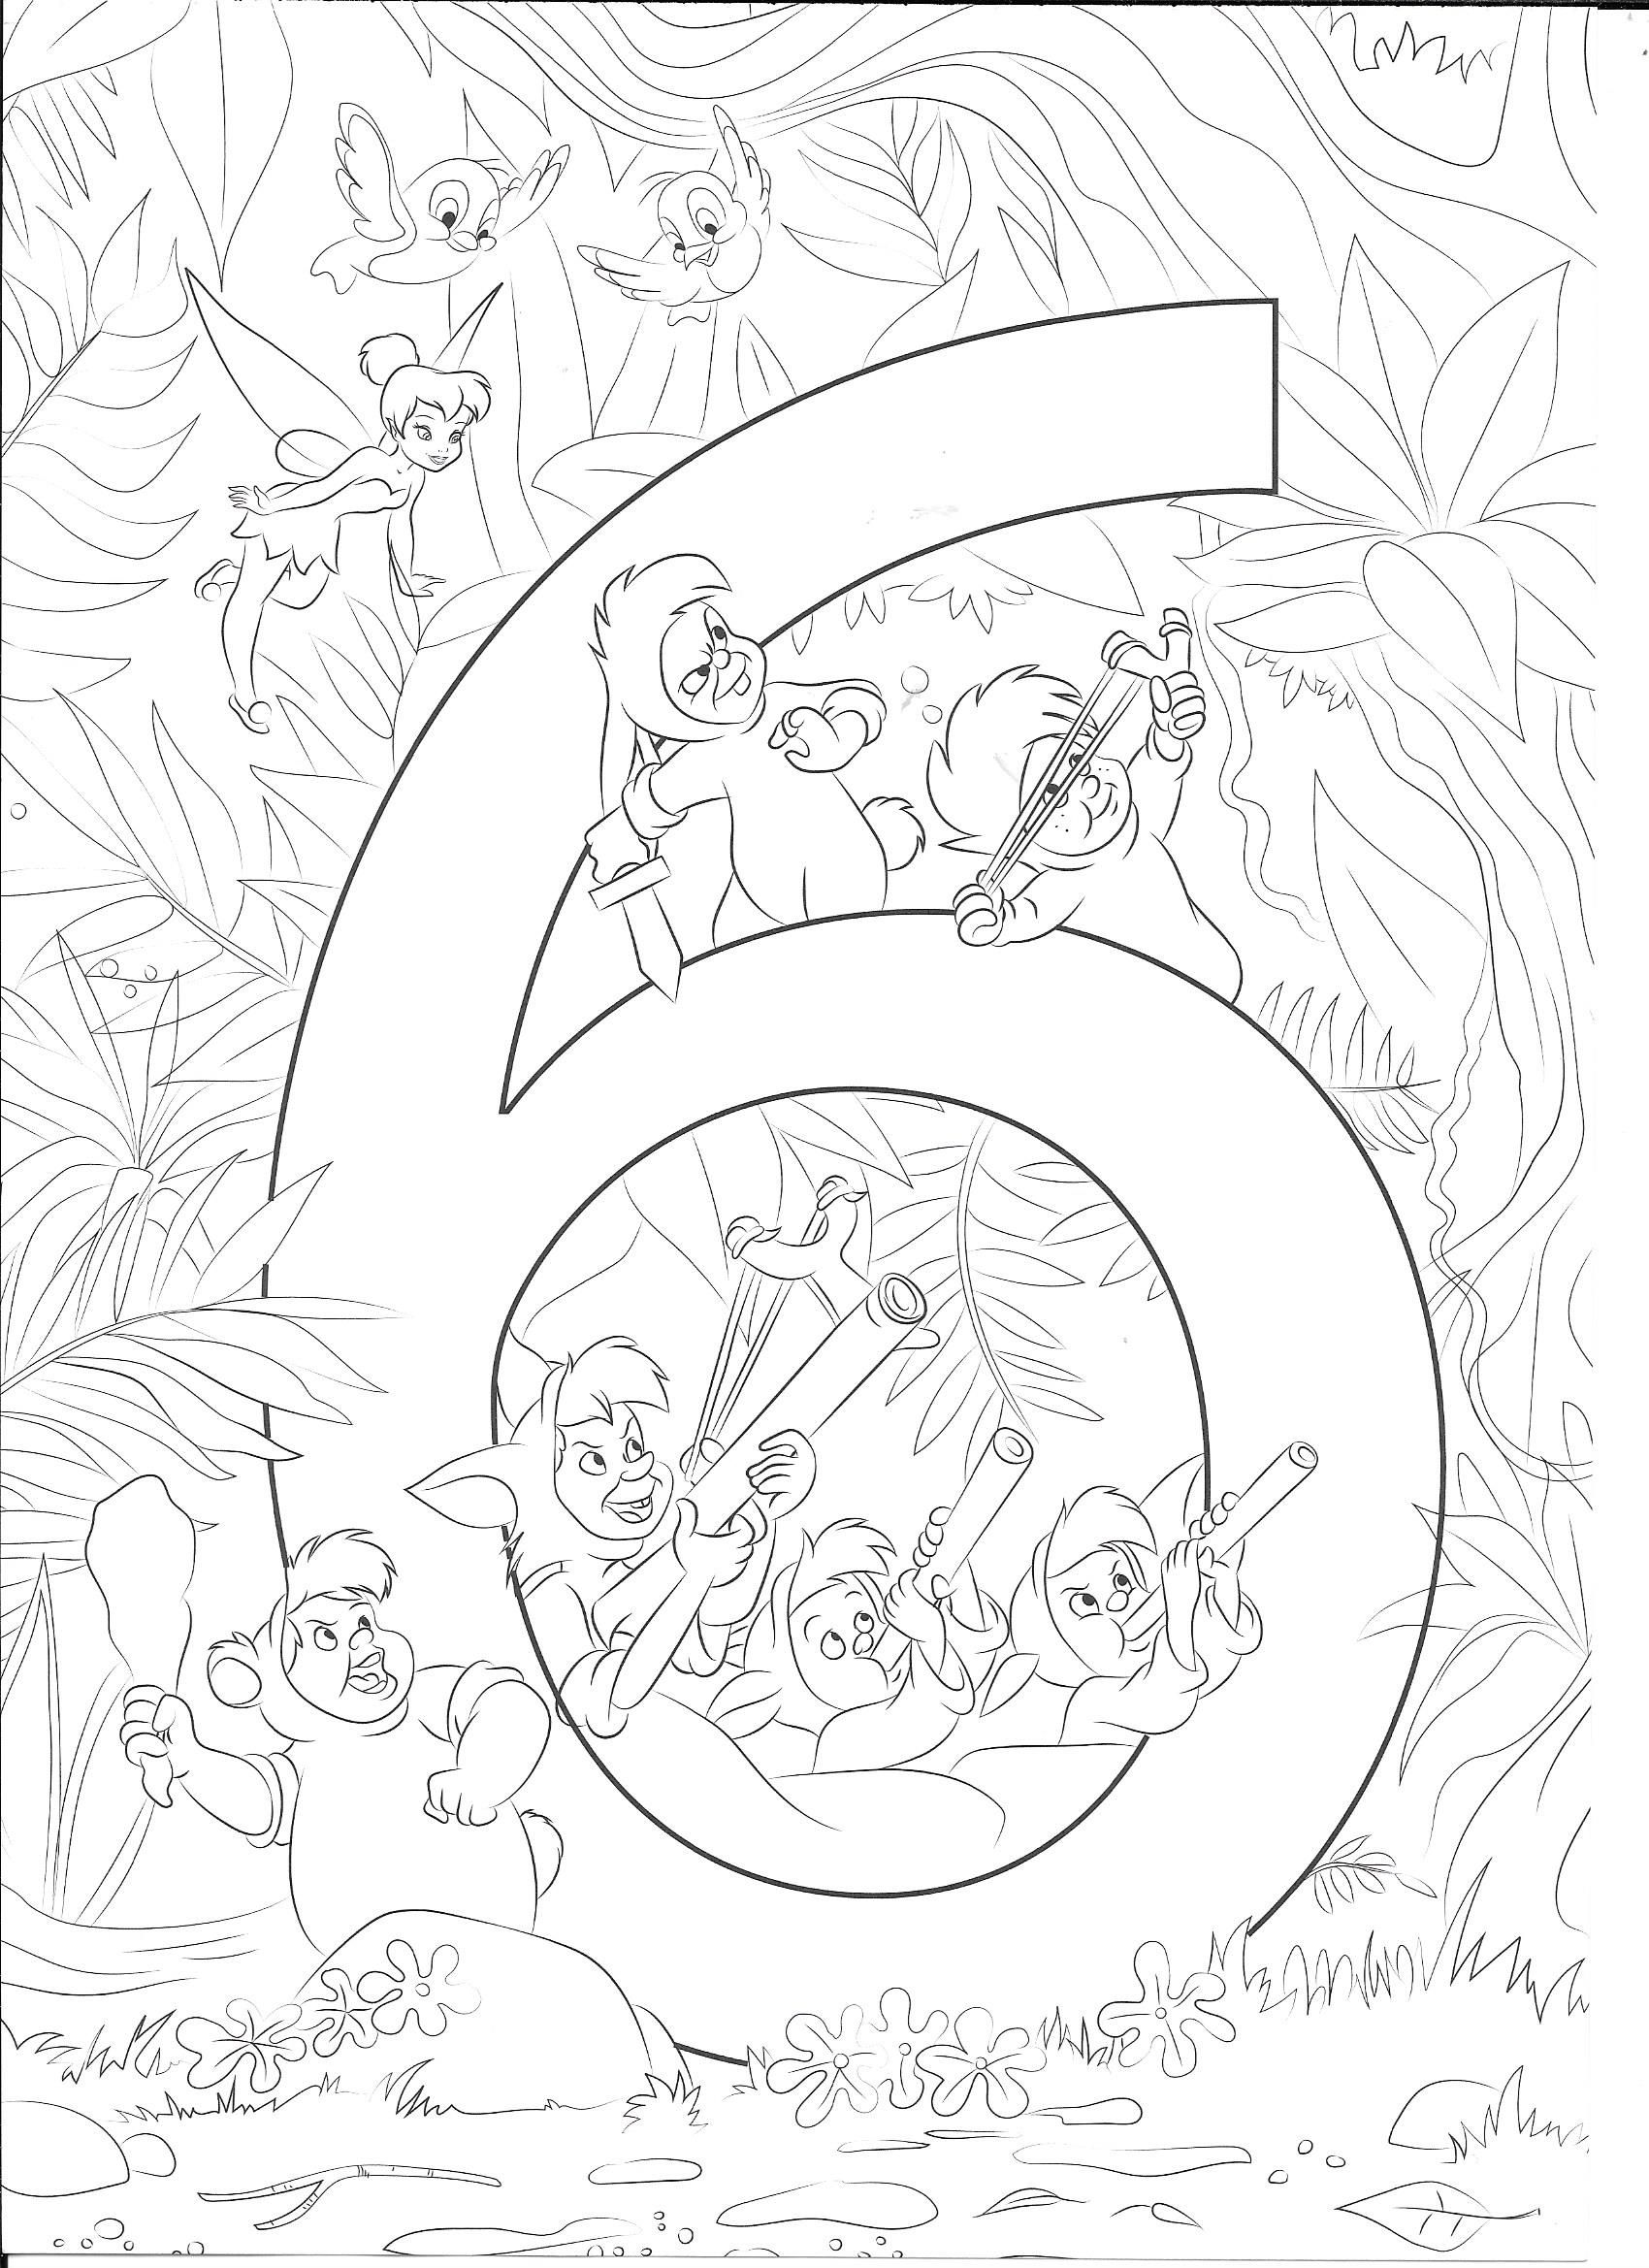 Pin By Fatooma Bu On Kids Coloring Room Disney Coloring Pages Pattern Coloring Pages Disney Alphabet